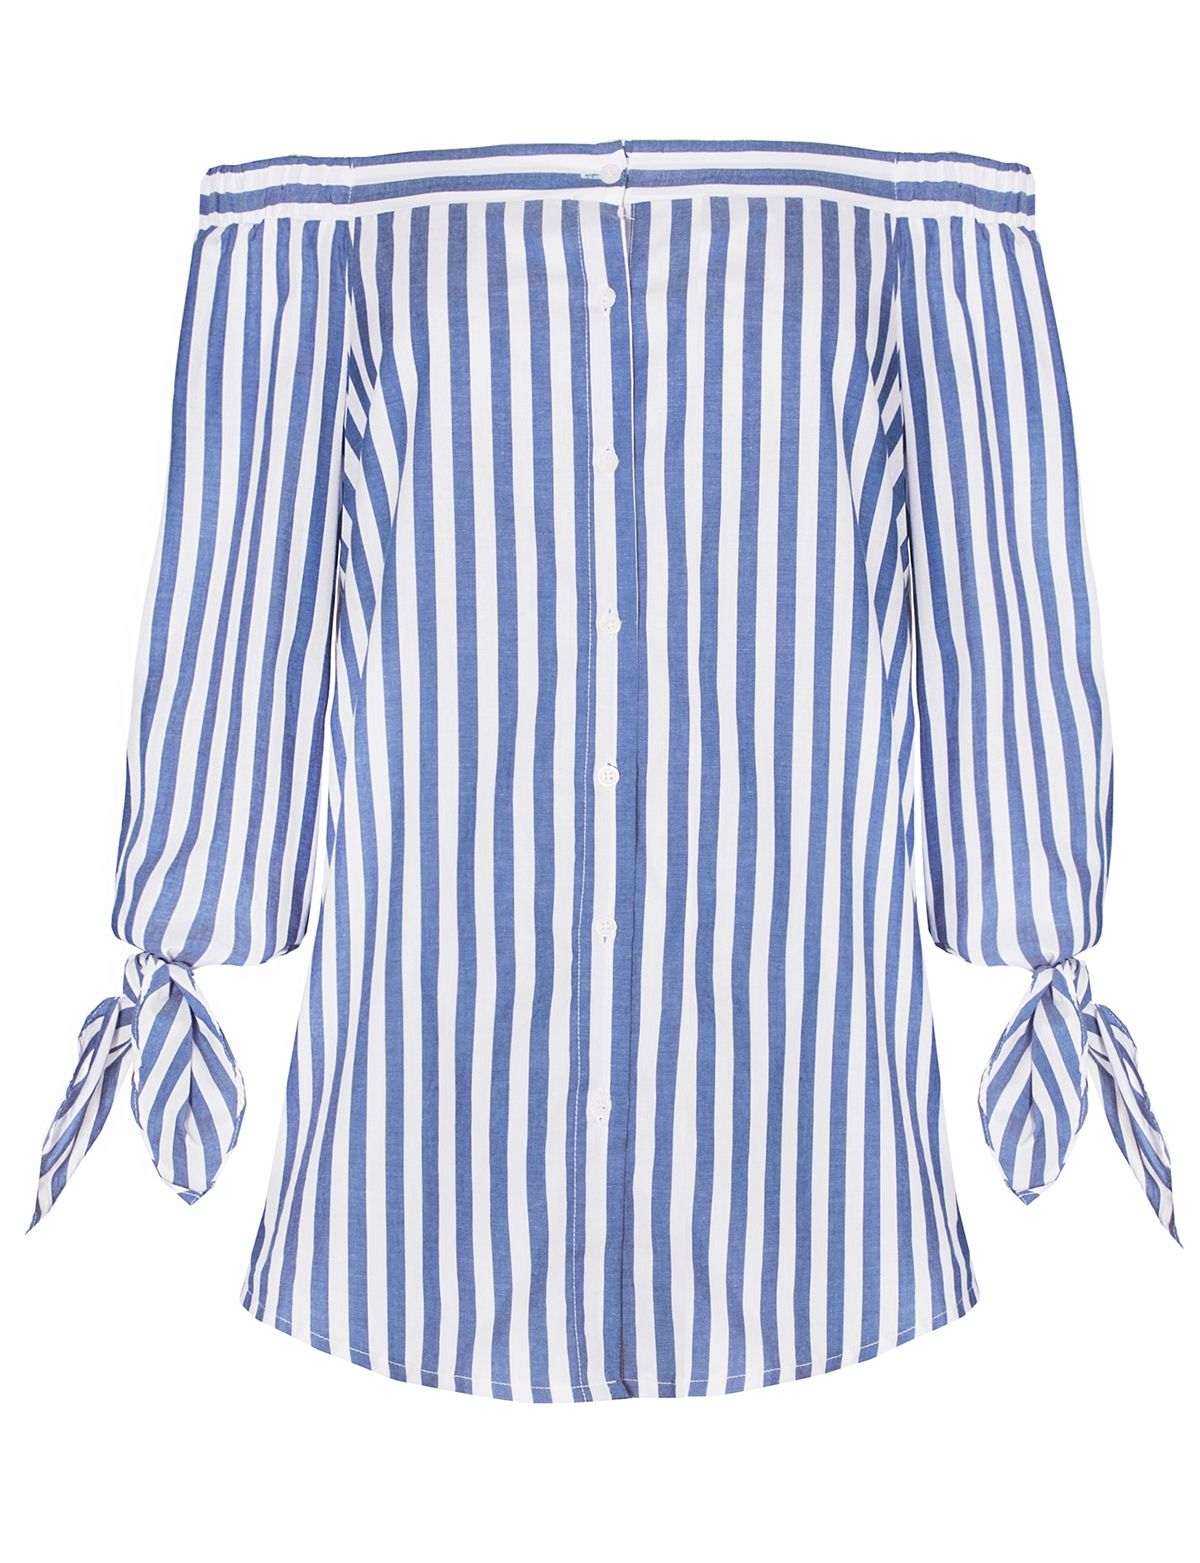 ed38e819 Cotton striped off the shoulder top with sleeve ties and button up front.  By New Revival. *100% cotton